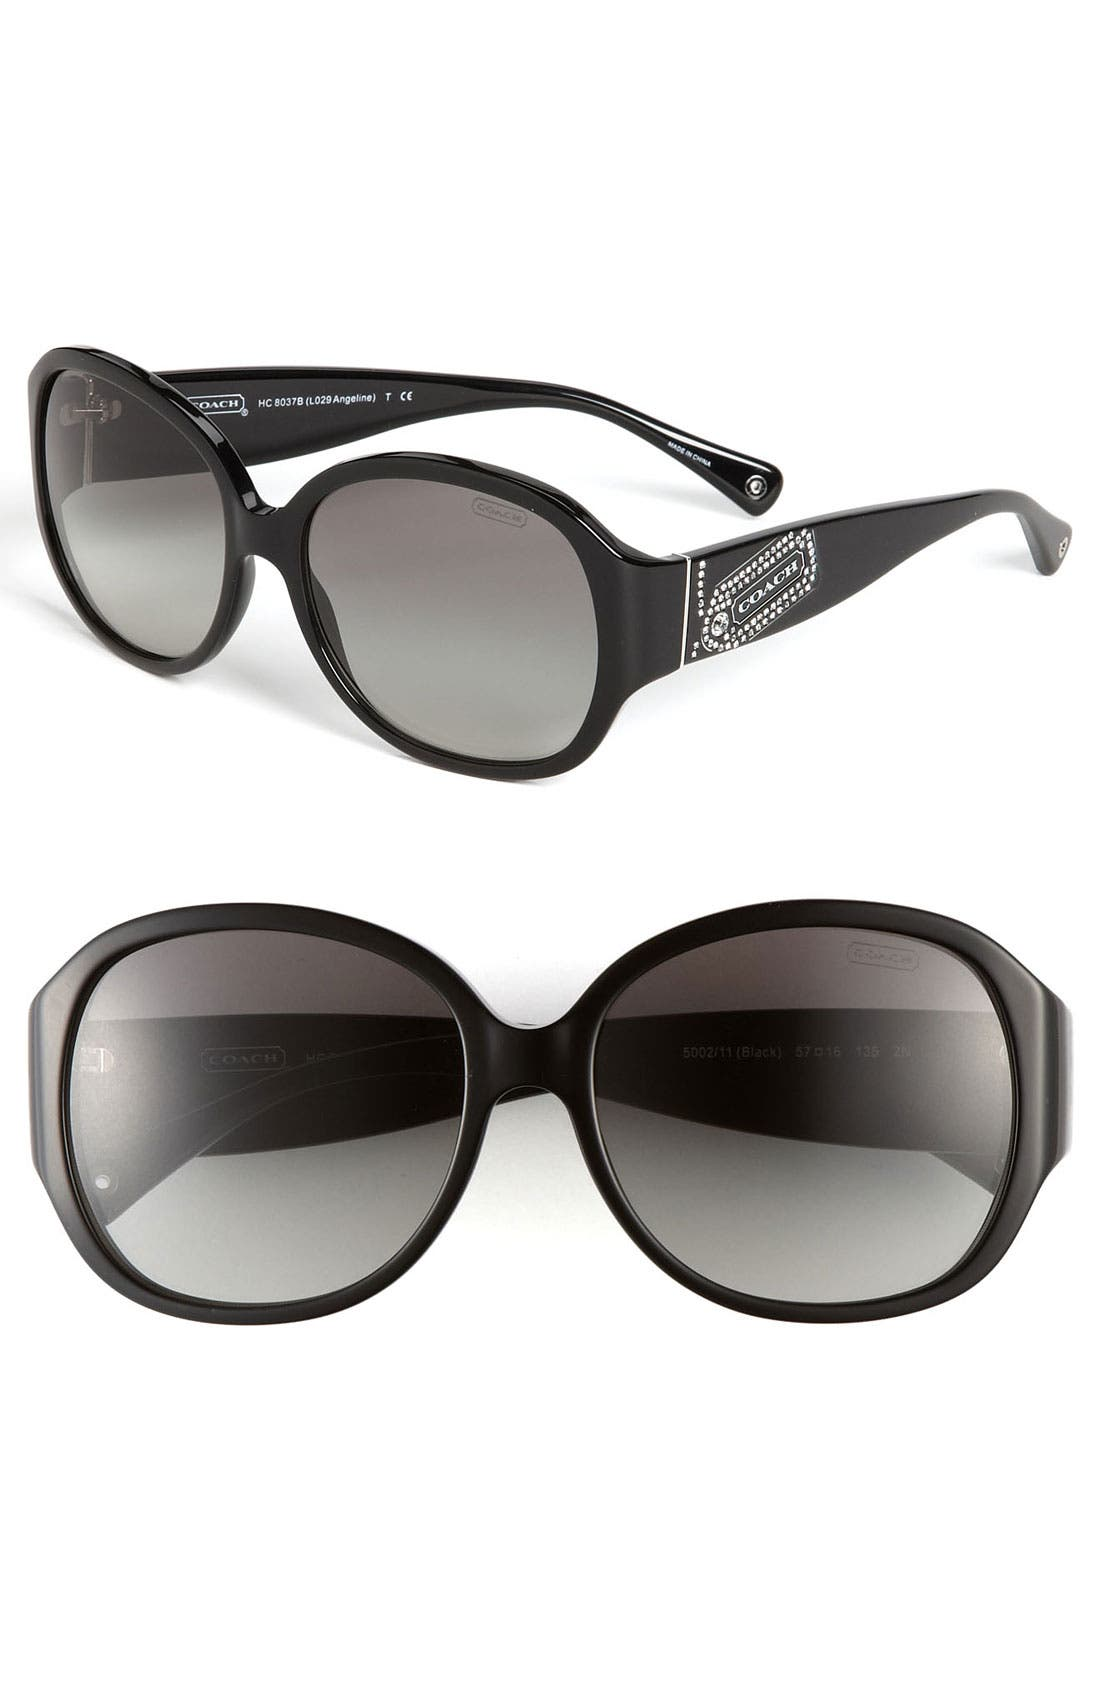 Main Image - COACH 'Angeline' 57mm Gradient Oversized Sunglasses